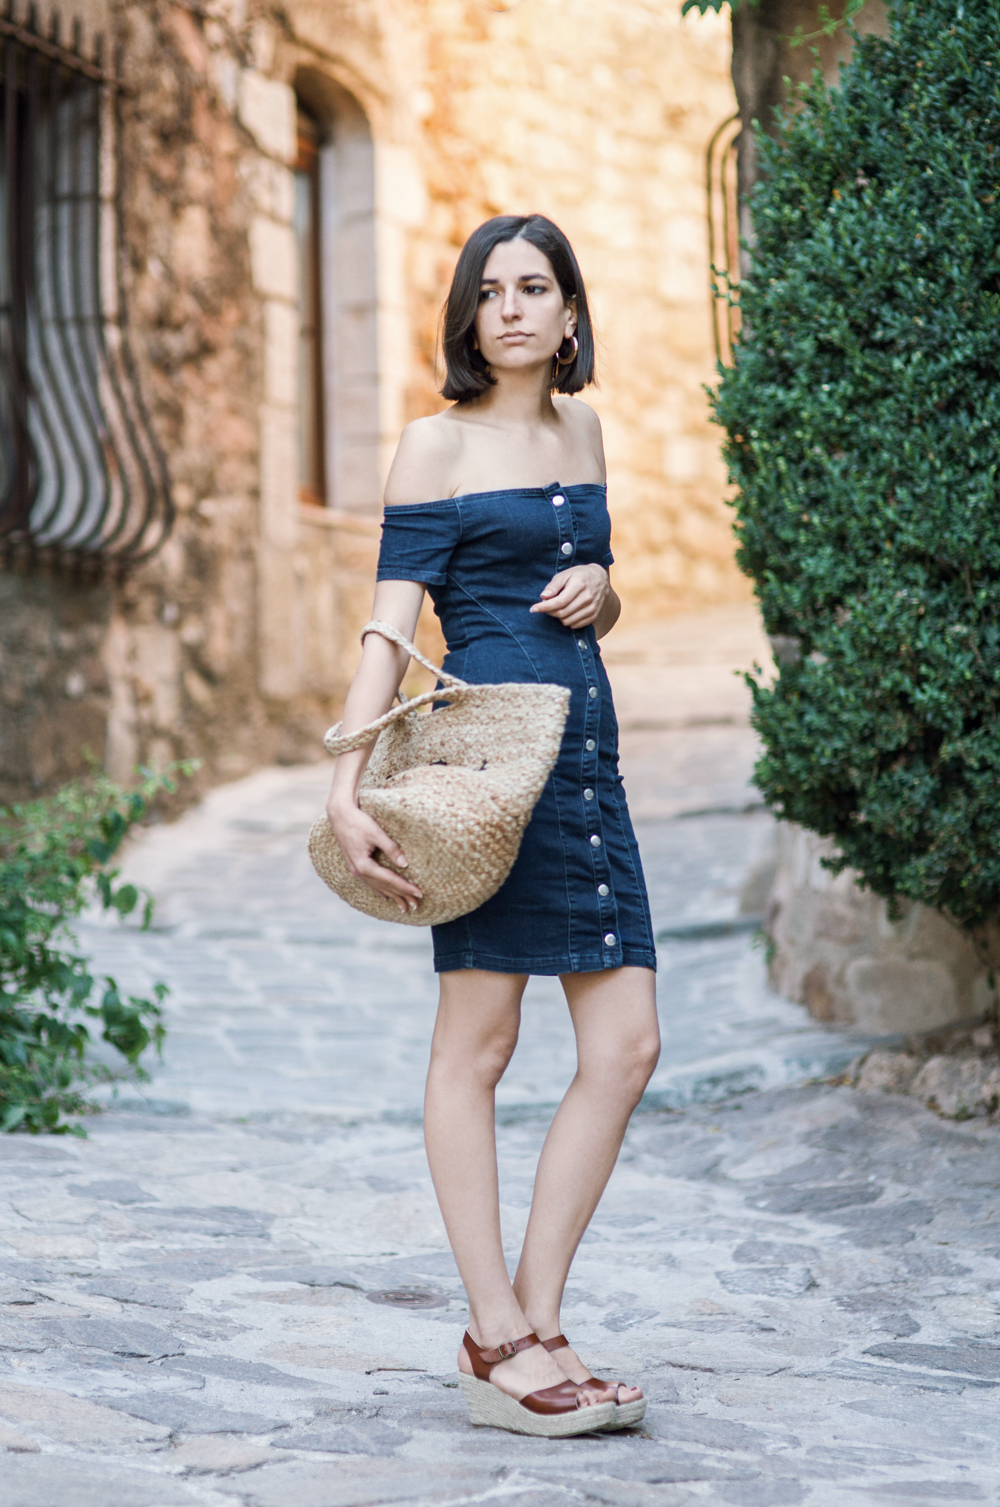 Tricky summer trends: The denim dress